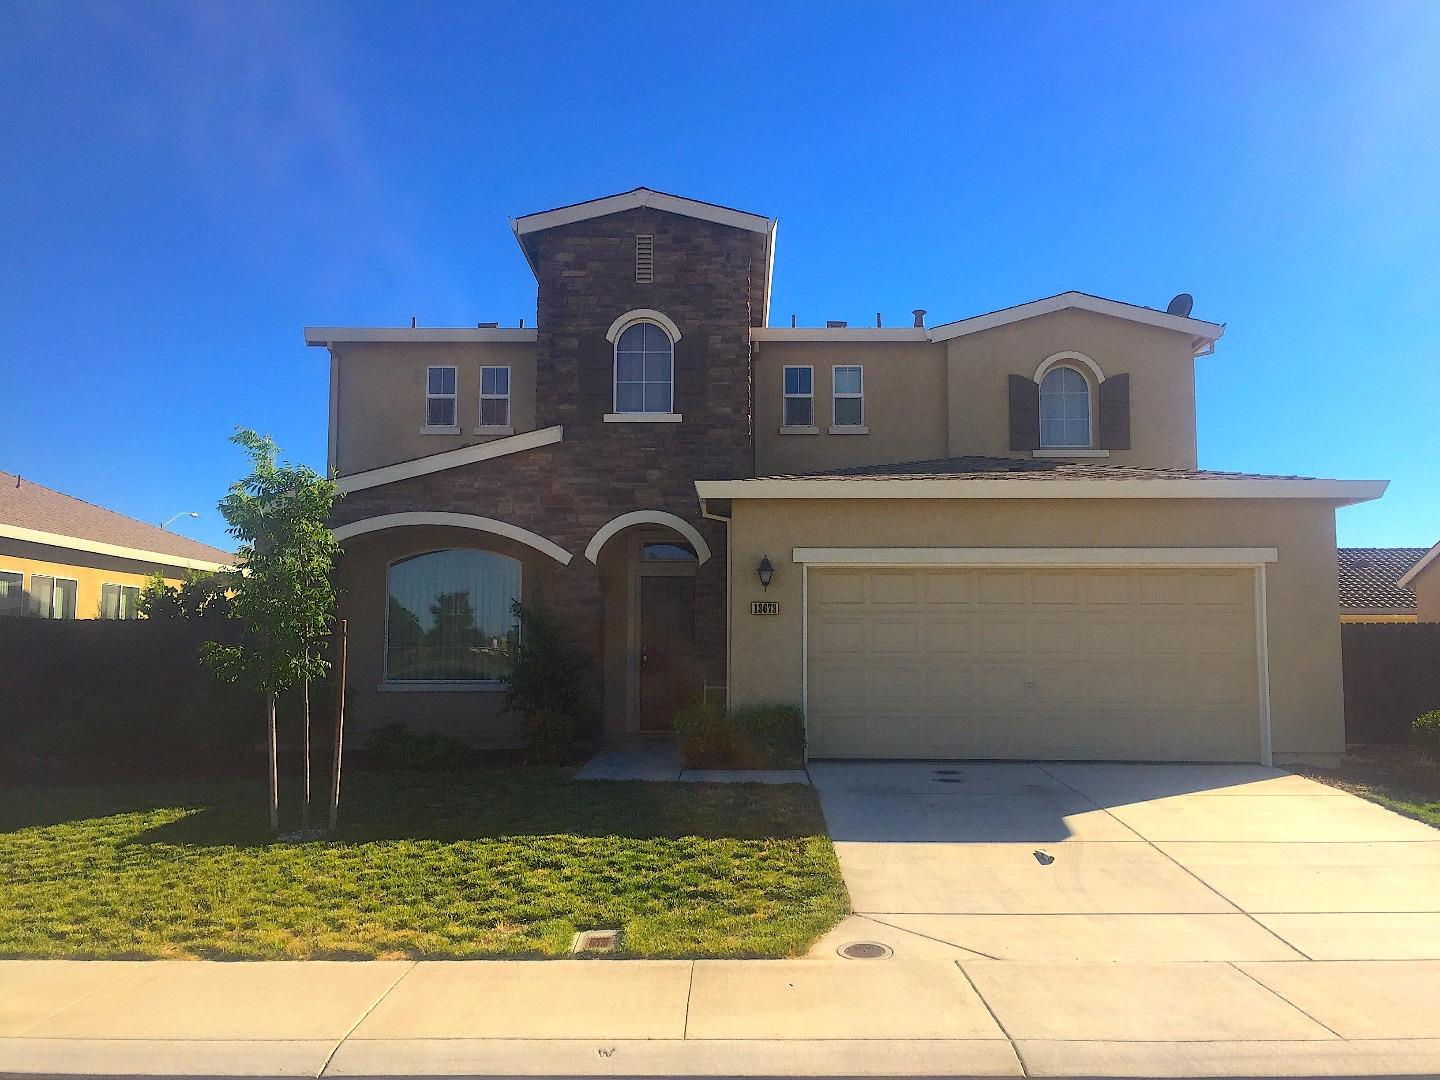 Single Family Home for Sale at 13673 Santa Lucia Drive 13673 Santa Lucia Drive Santa Nella, California 95322 United States